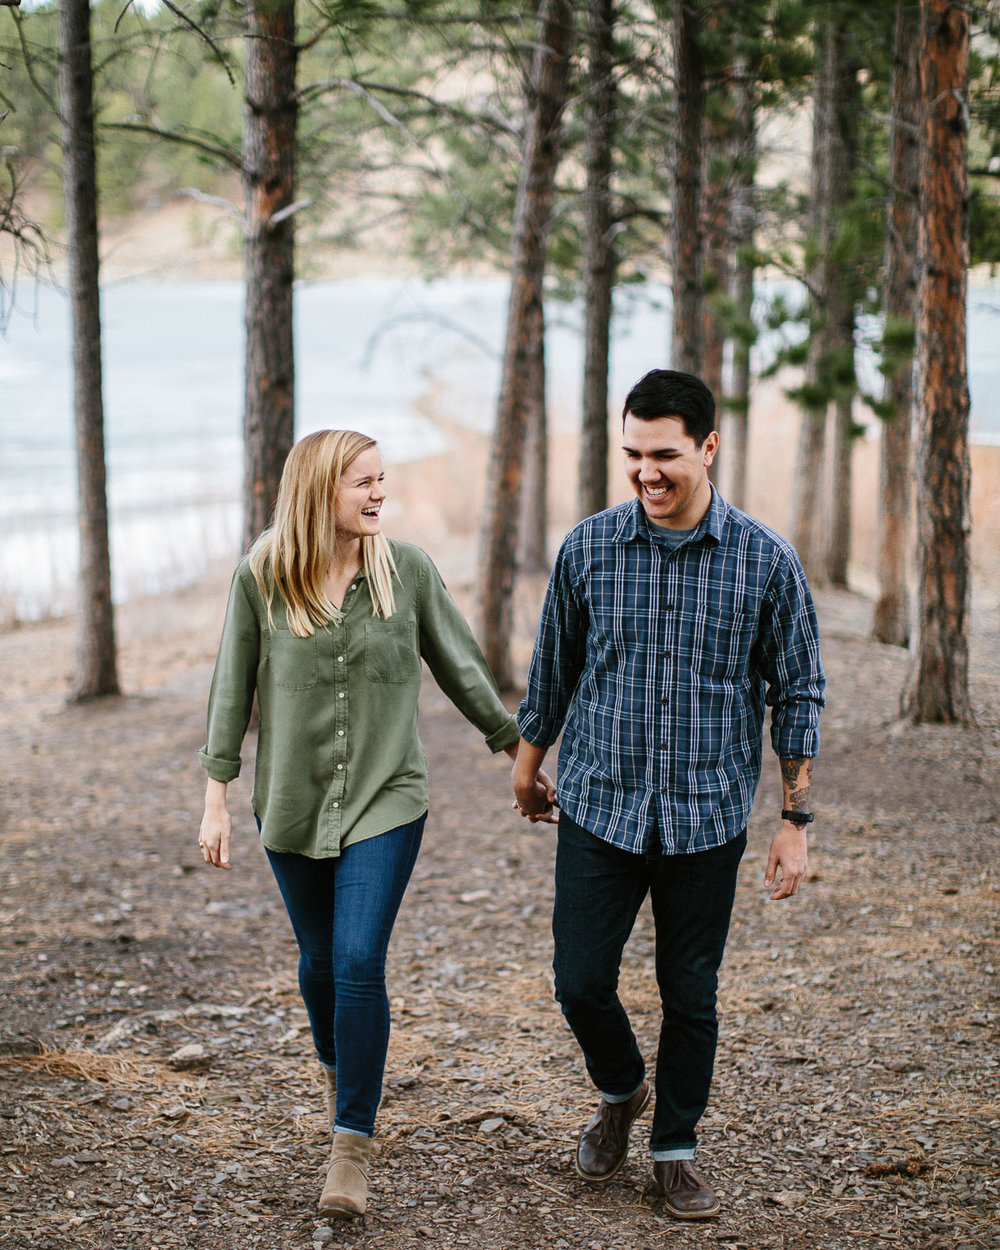 BlackHills_Adventure_Engagement_Session_Alcee&Stefan_03.jpg